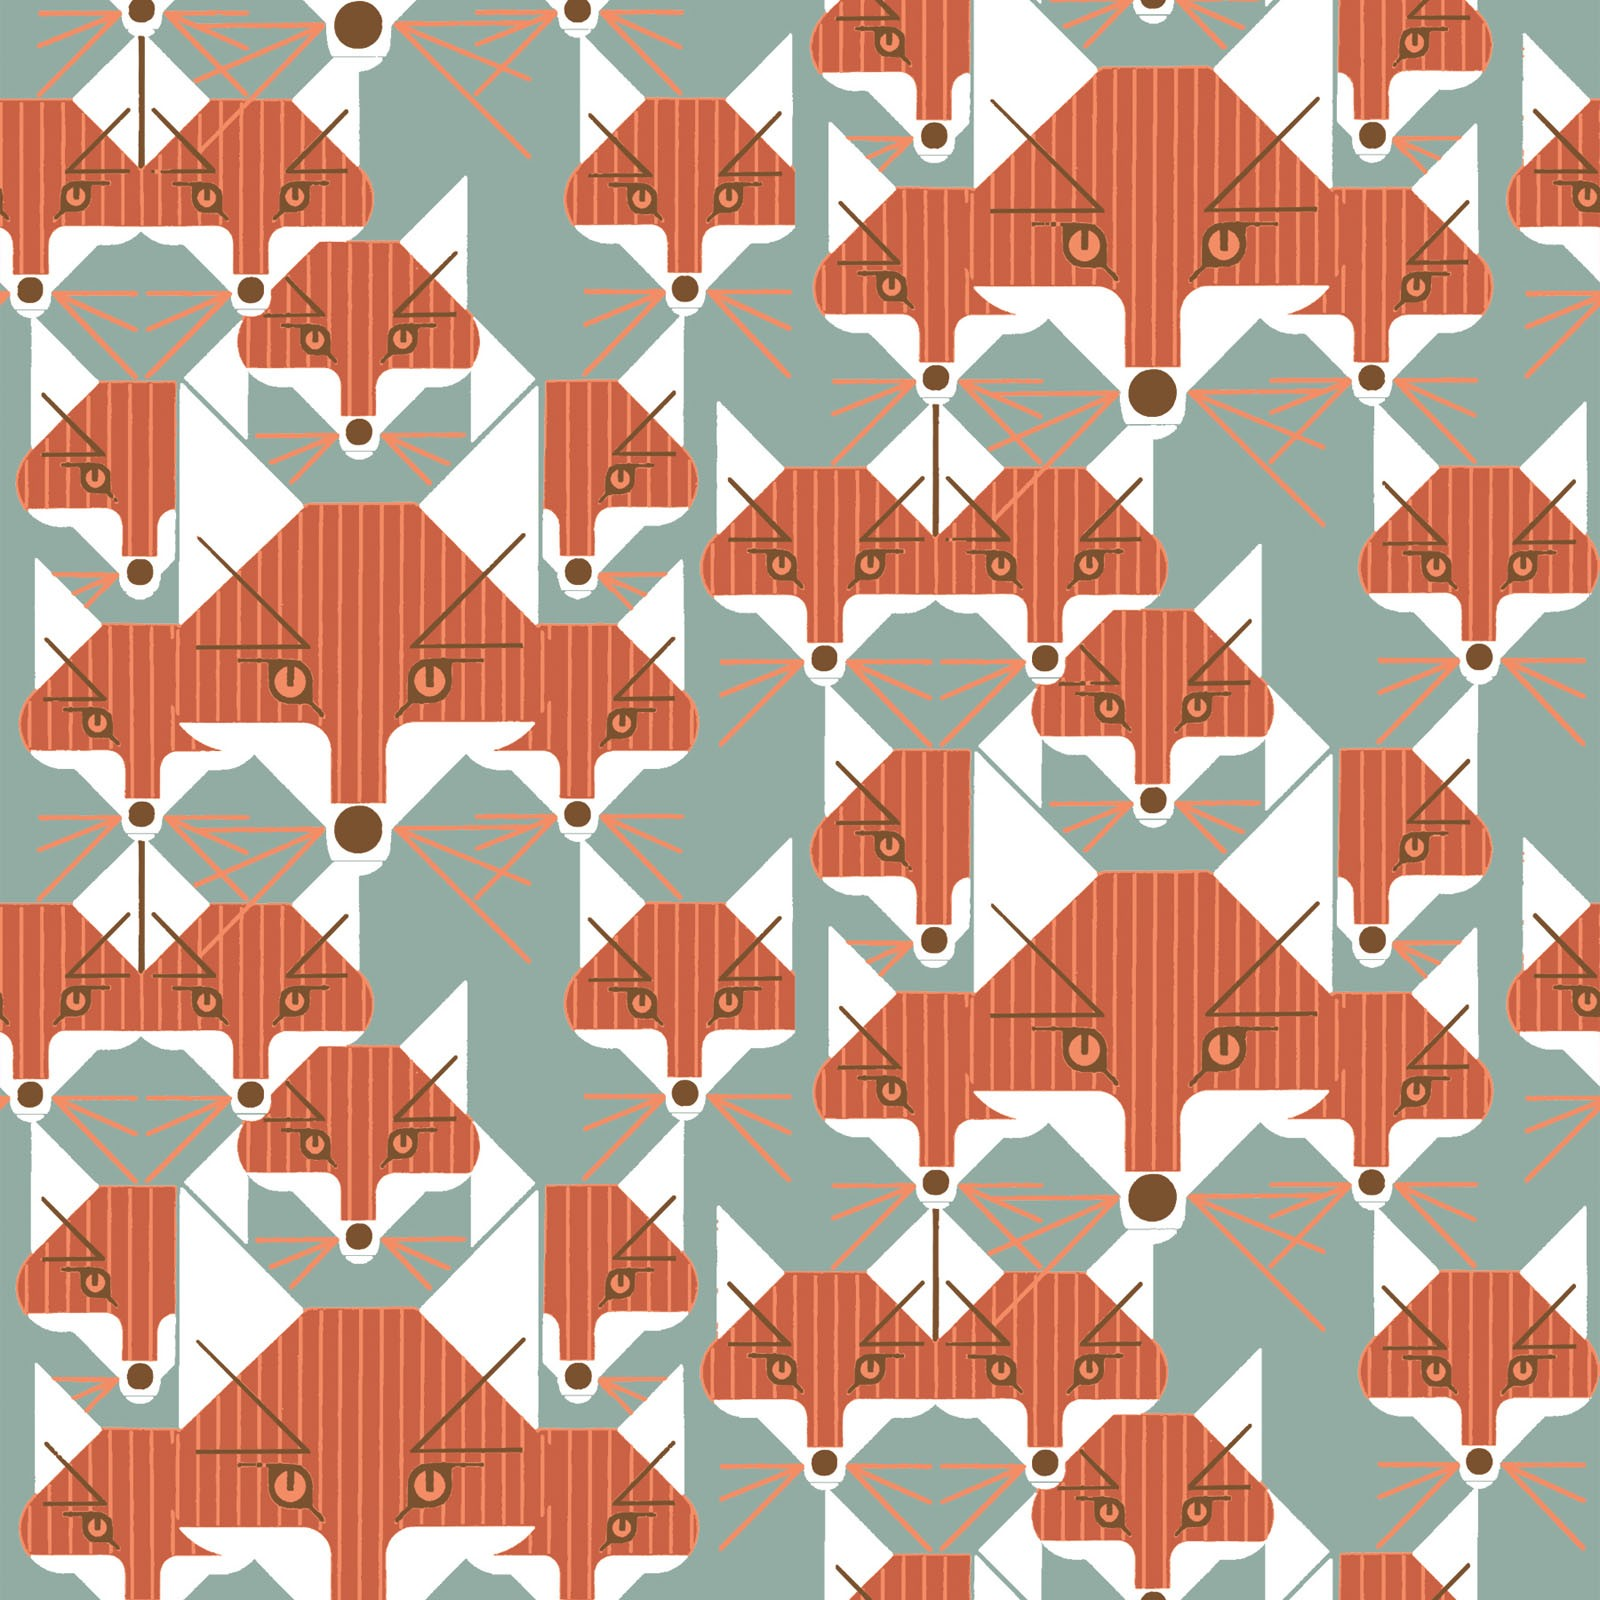 Foxsimiles (Poplin Fabric) by Charley Harper from the Best of Charley Harper collection for Birch #CH88